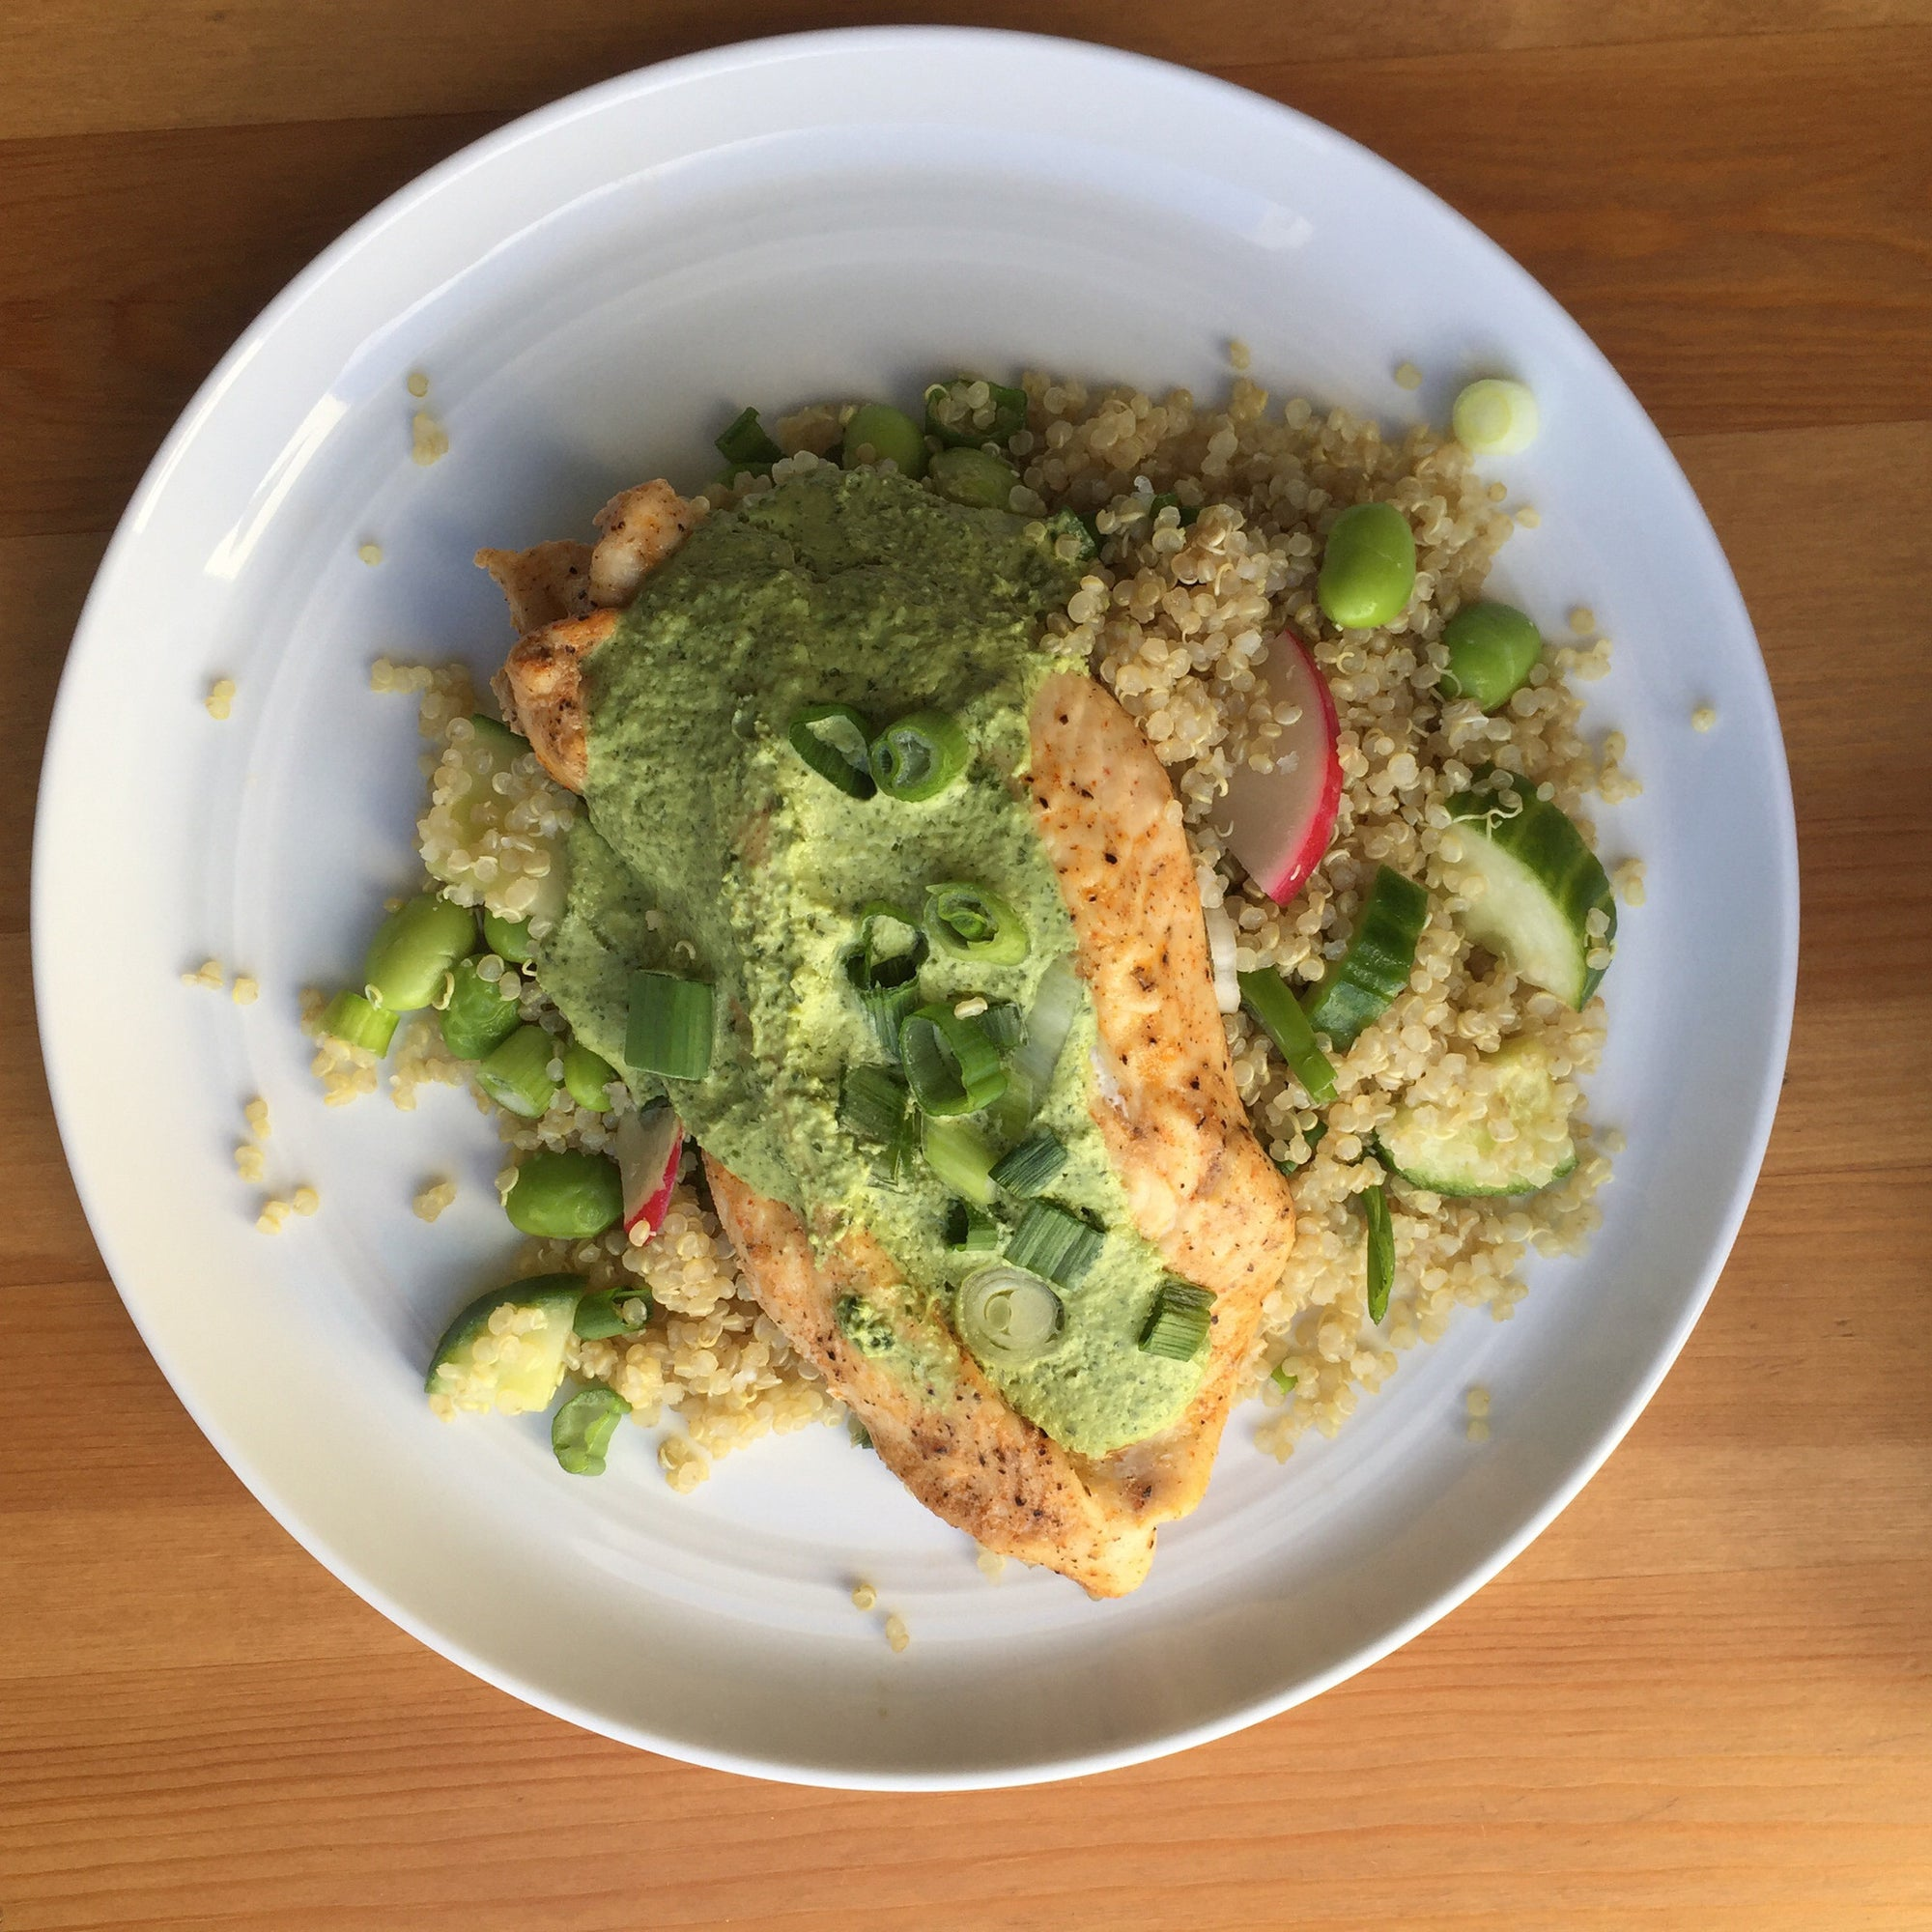 Roasted Chicken w/ Green Tahini Sauce over Cauliflower Rice (Low Carb)